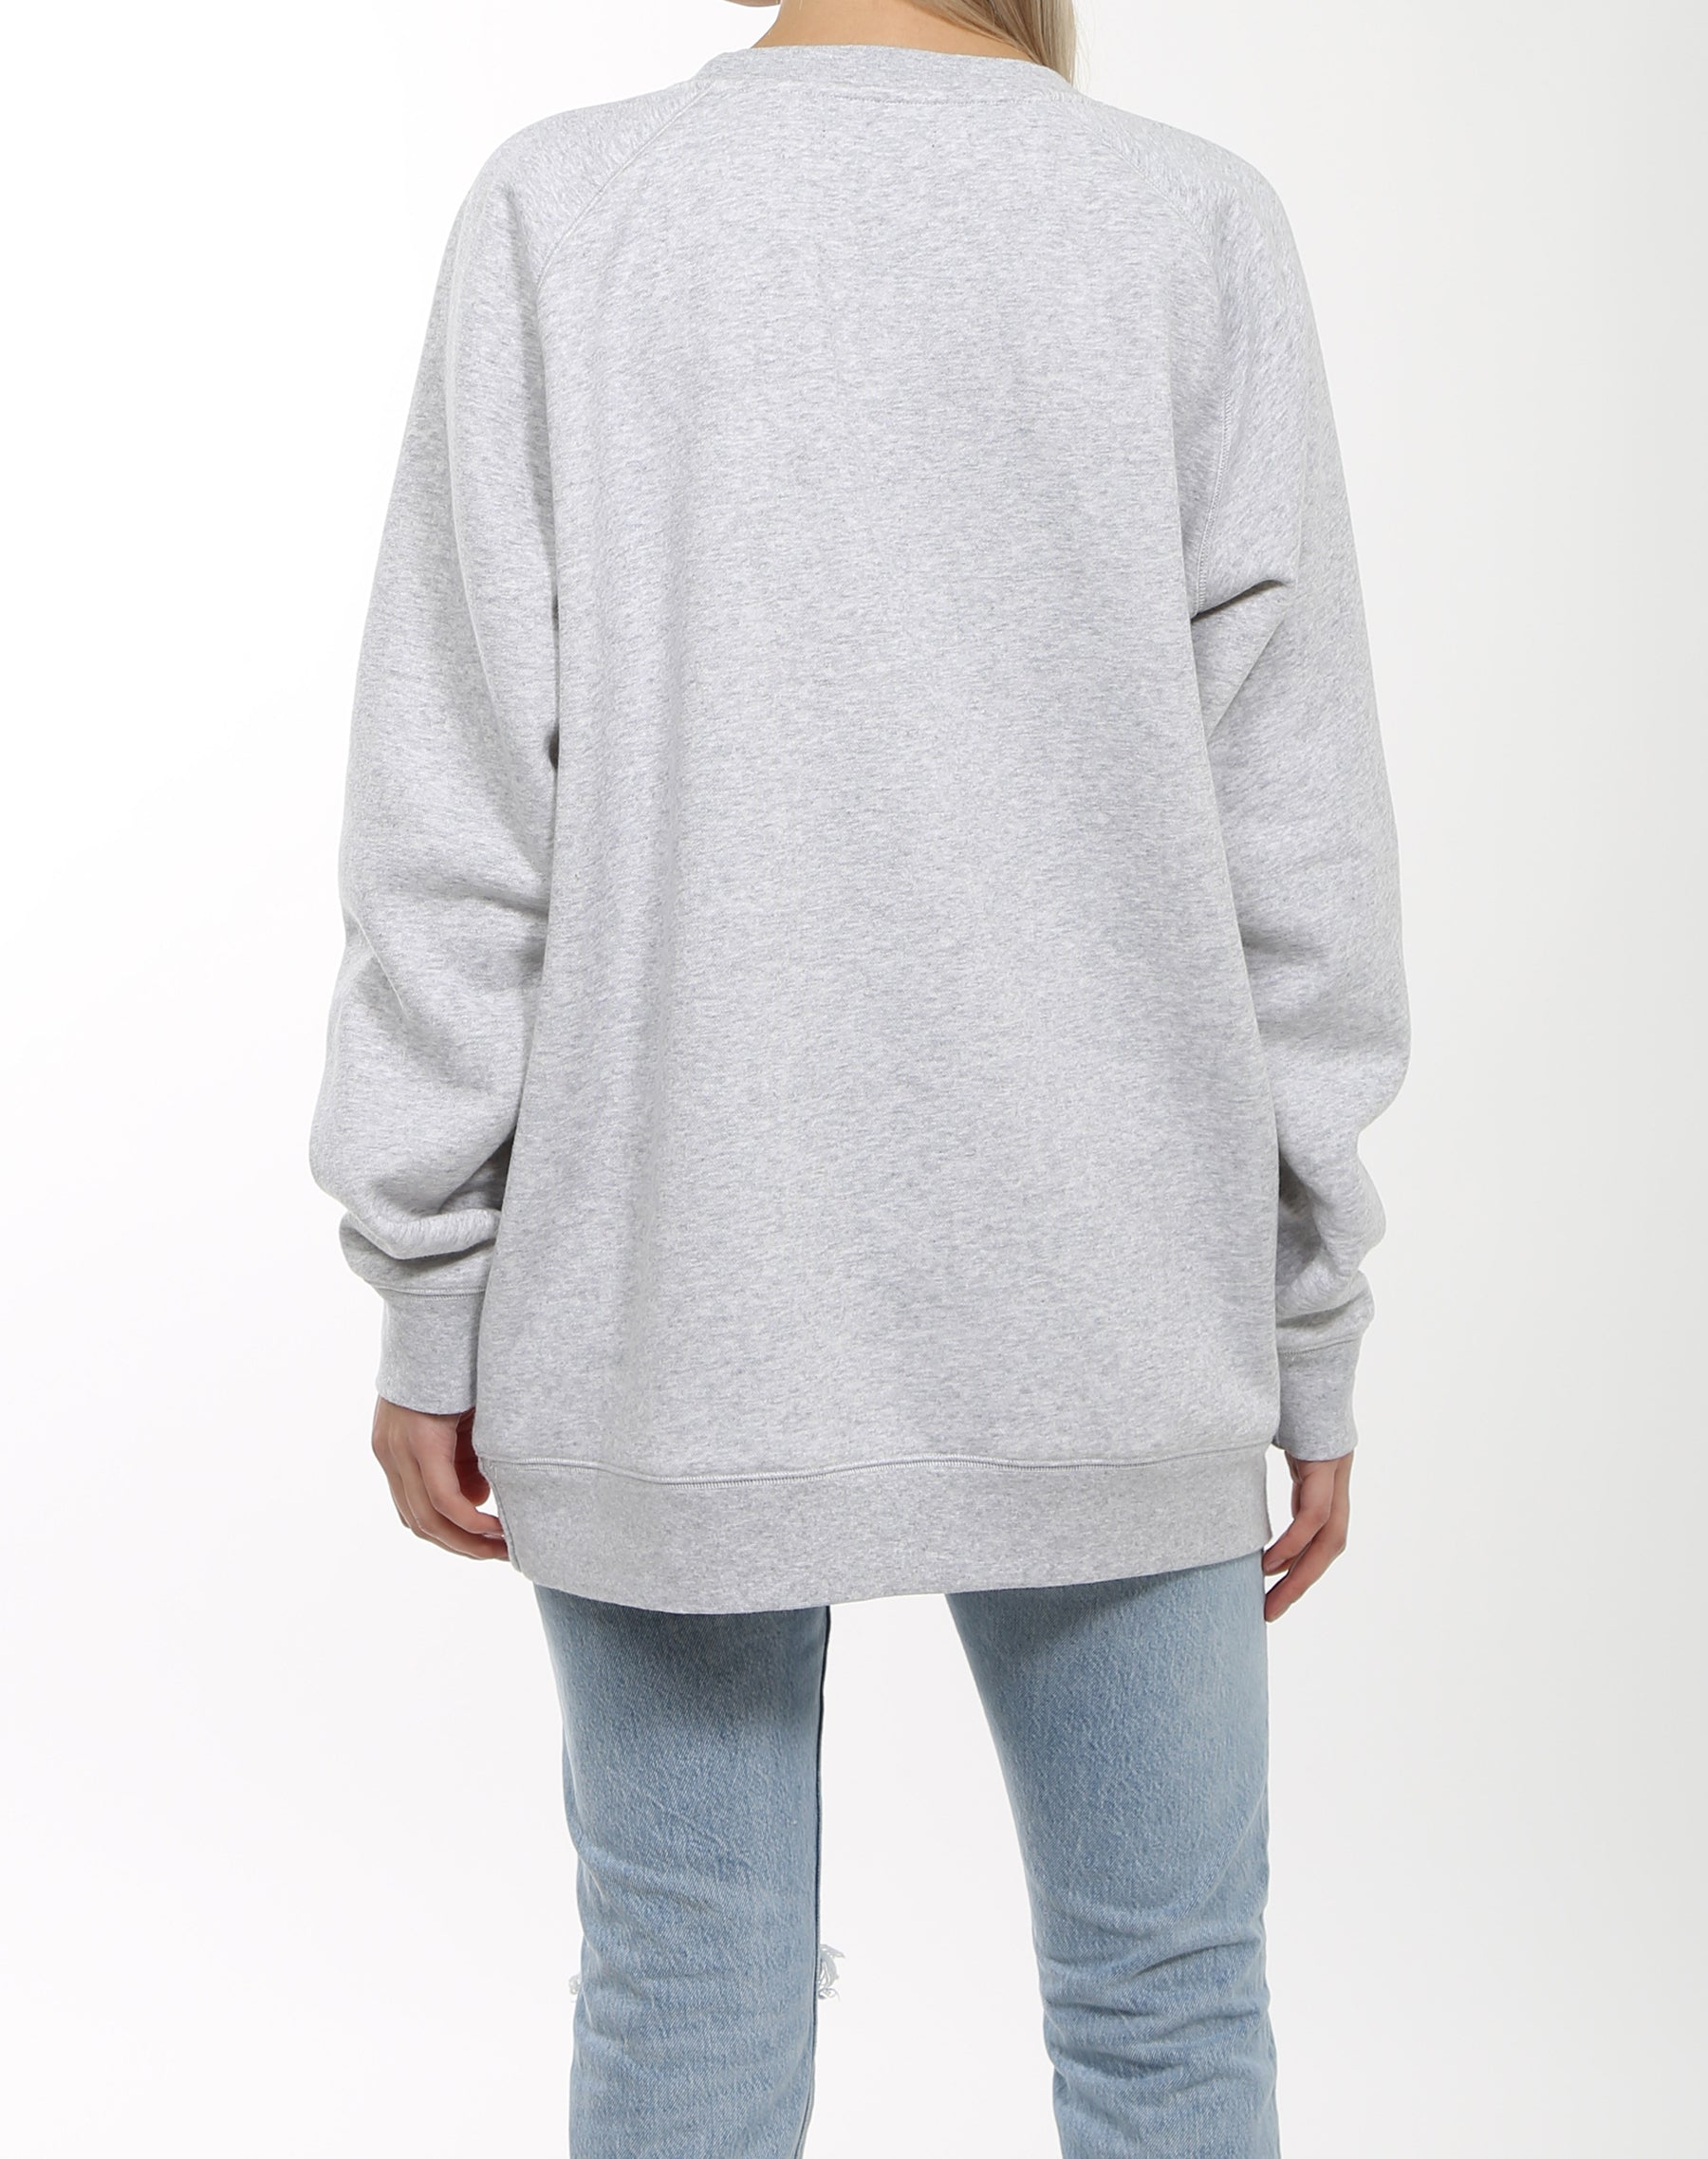 Photo of the back of the Redhead big sister crew neck sweatshirt in pebble grey by Brunette the Label.